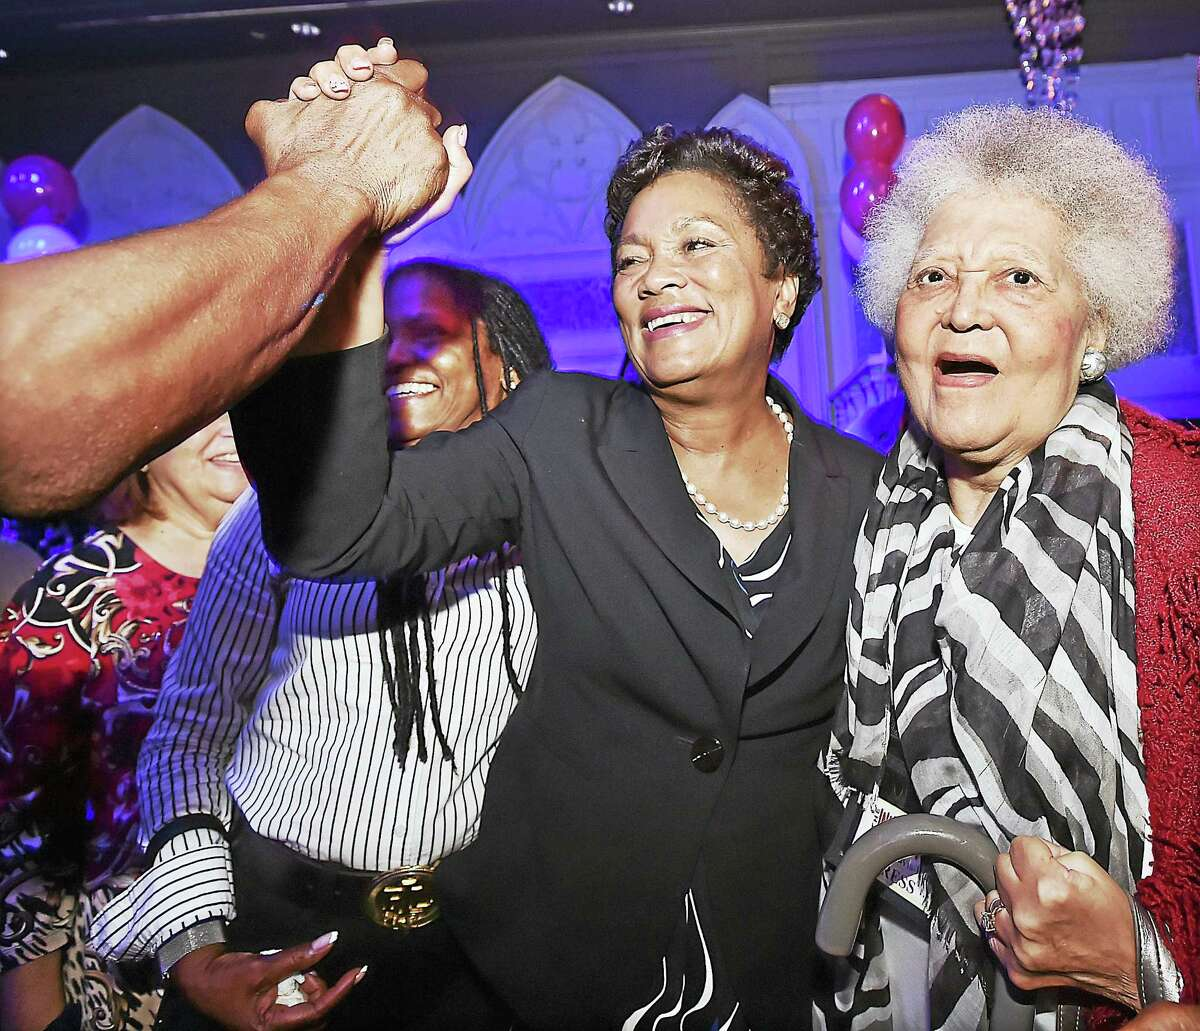 Mayor Toni Harp, center, celebrates her primary win while posing for a picture with Arlene Davis-Rudd of the Inner City News Tuesday at Vanity, 144 Temple St.